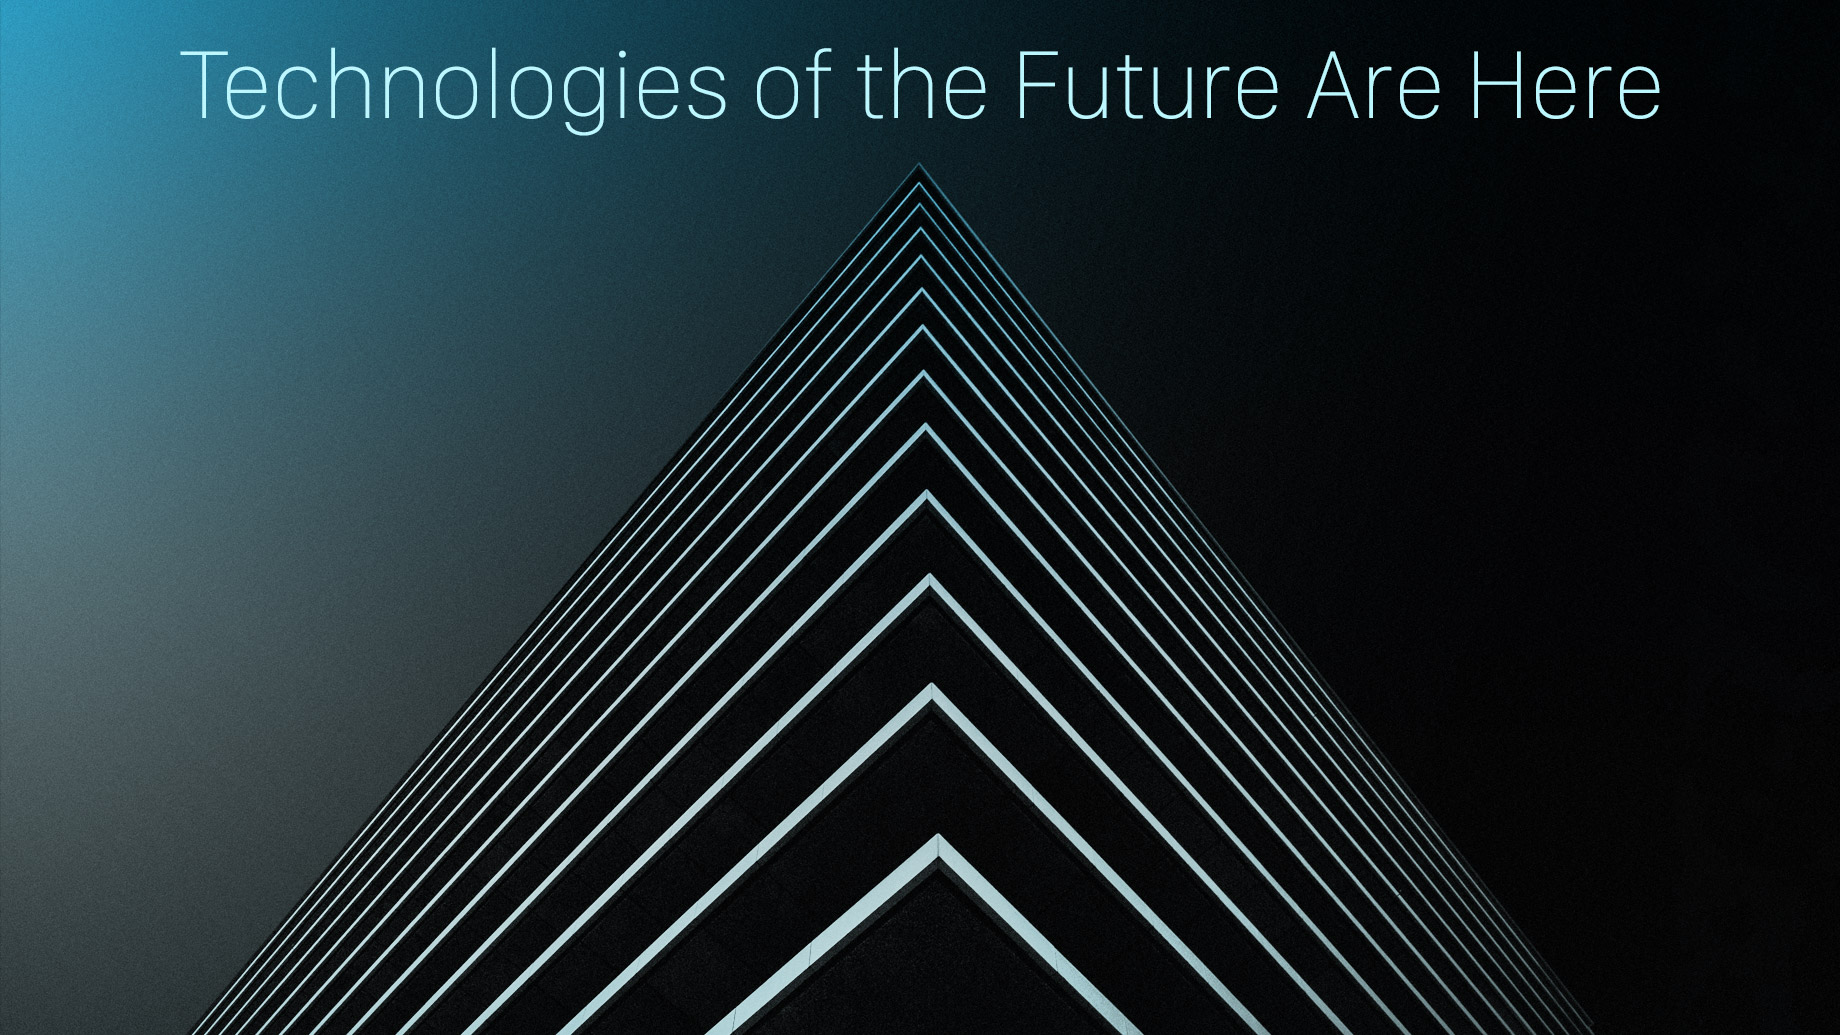 Technologies of the Future Are Here